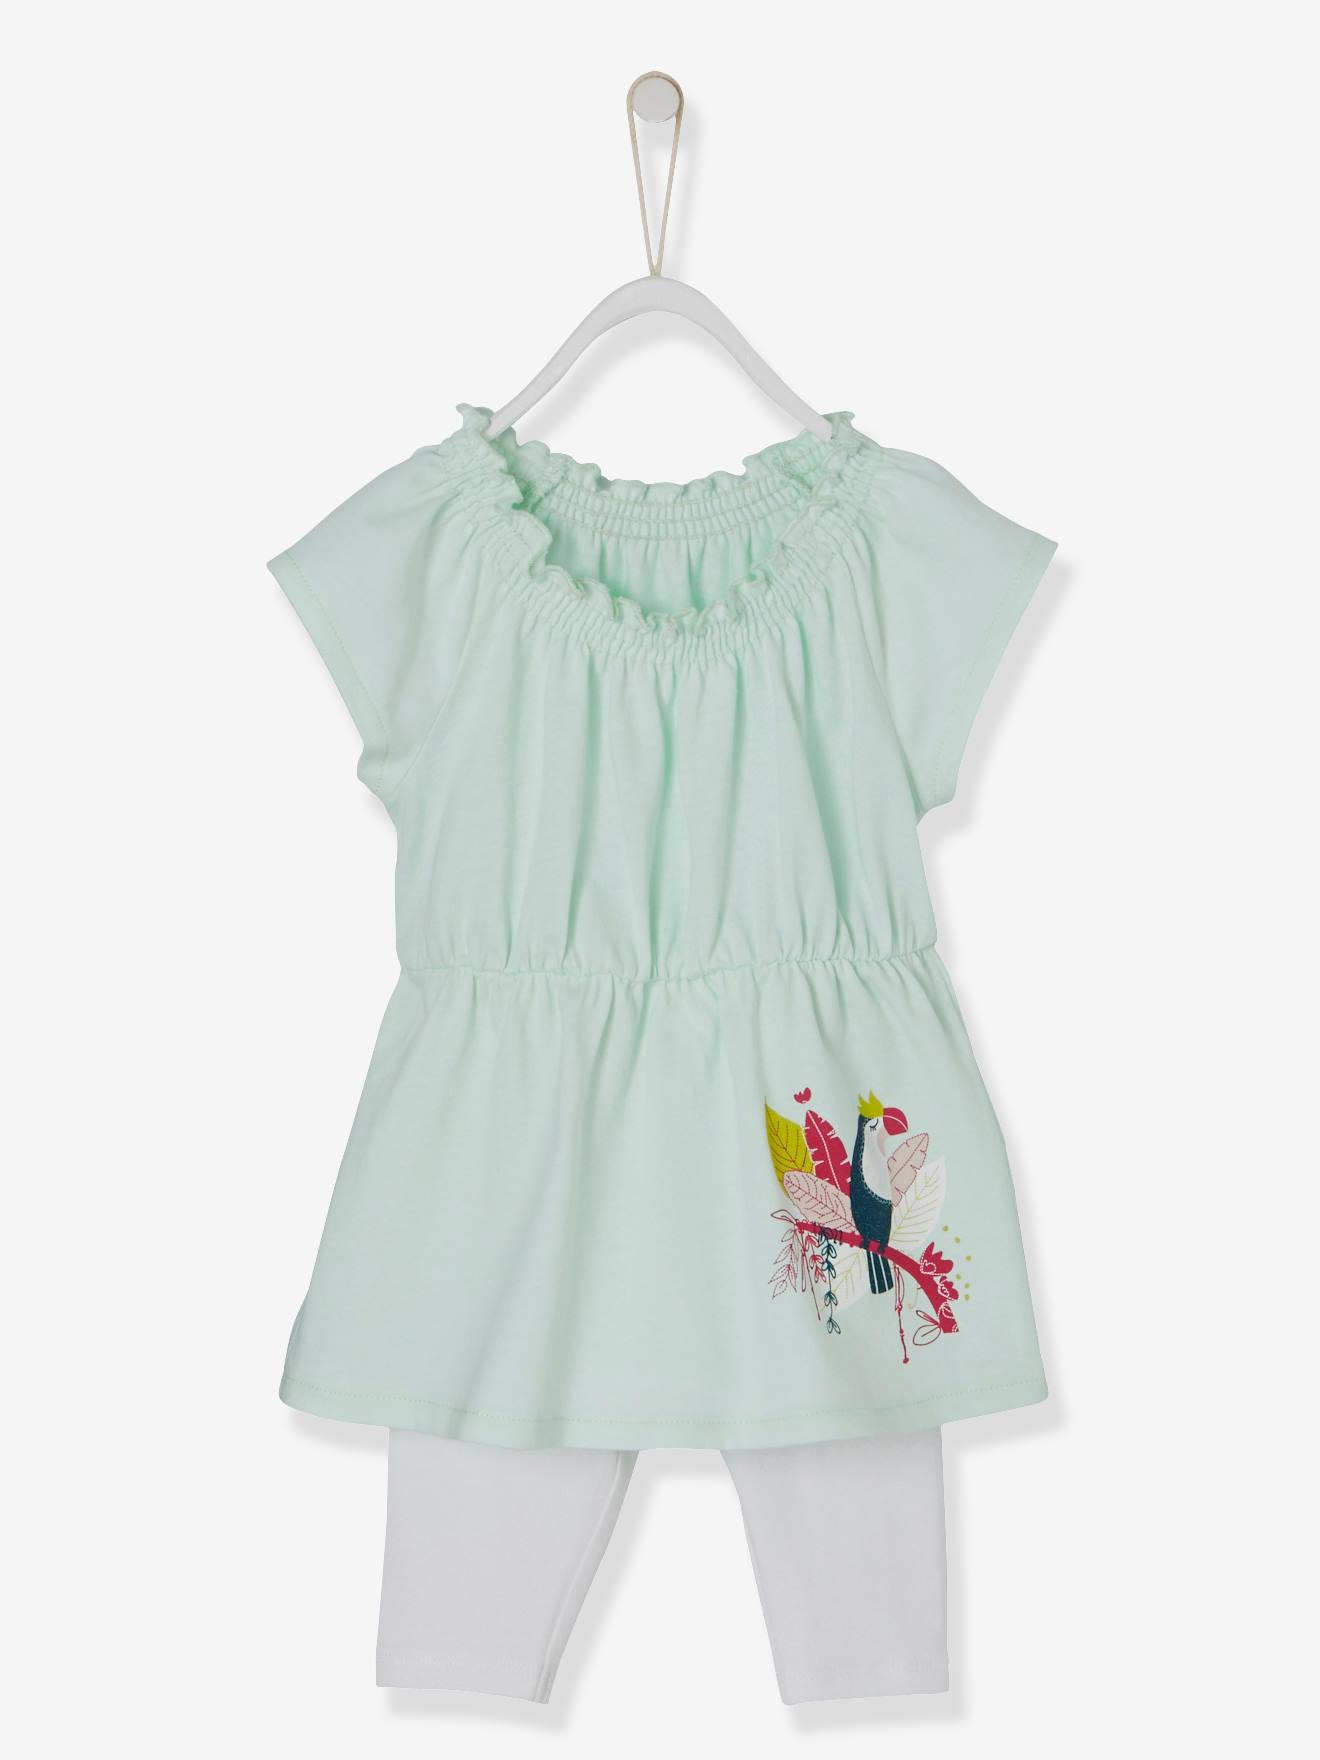 Adaptable 5 Sets Baby Girls Clothes Baby & Toddler Clothing